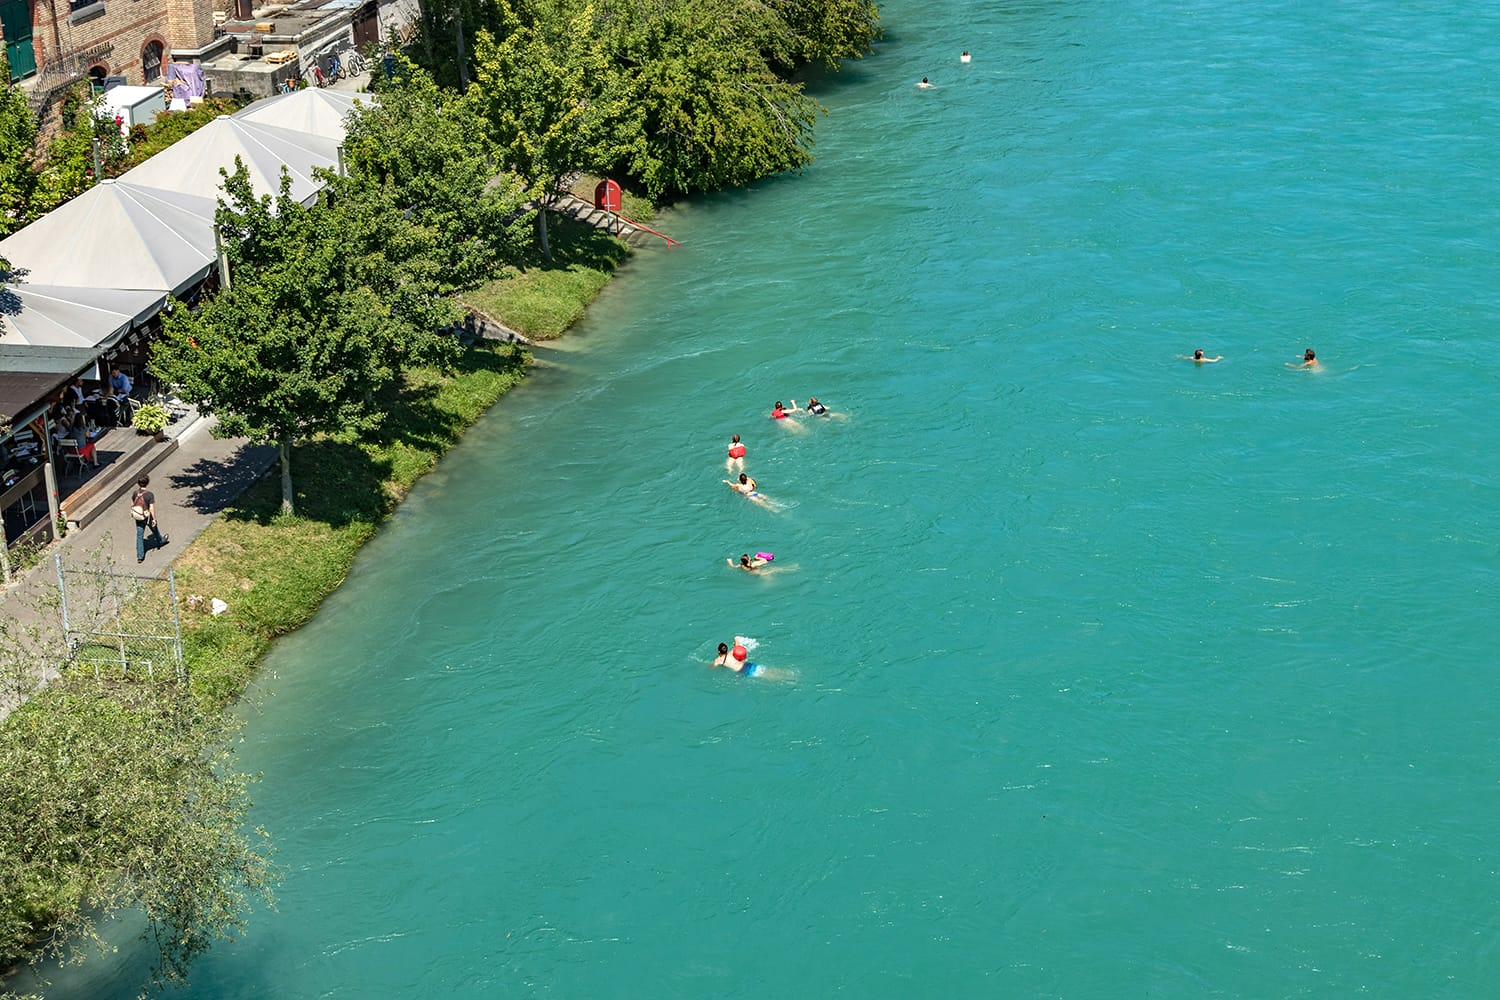 View of Aare river at sunny summer day. Local residents relax, sunbathe and rafting in inflatable boats along the fast flow of the river.